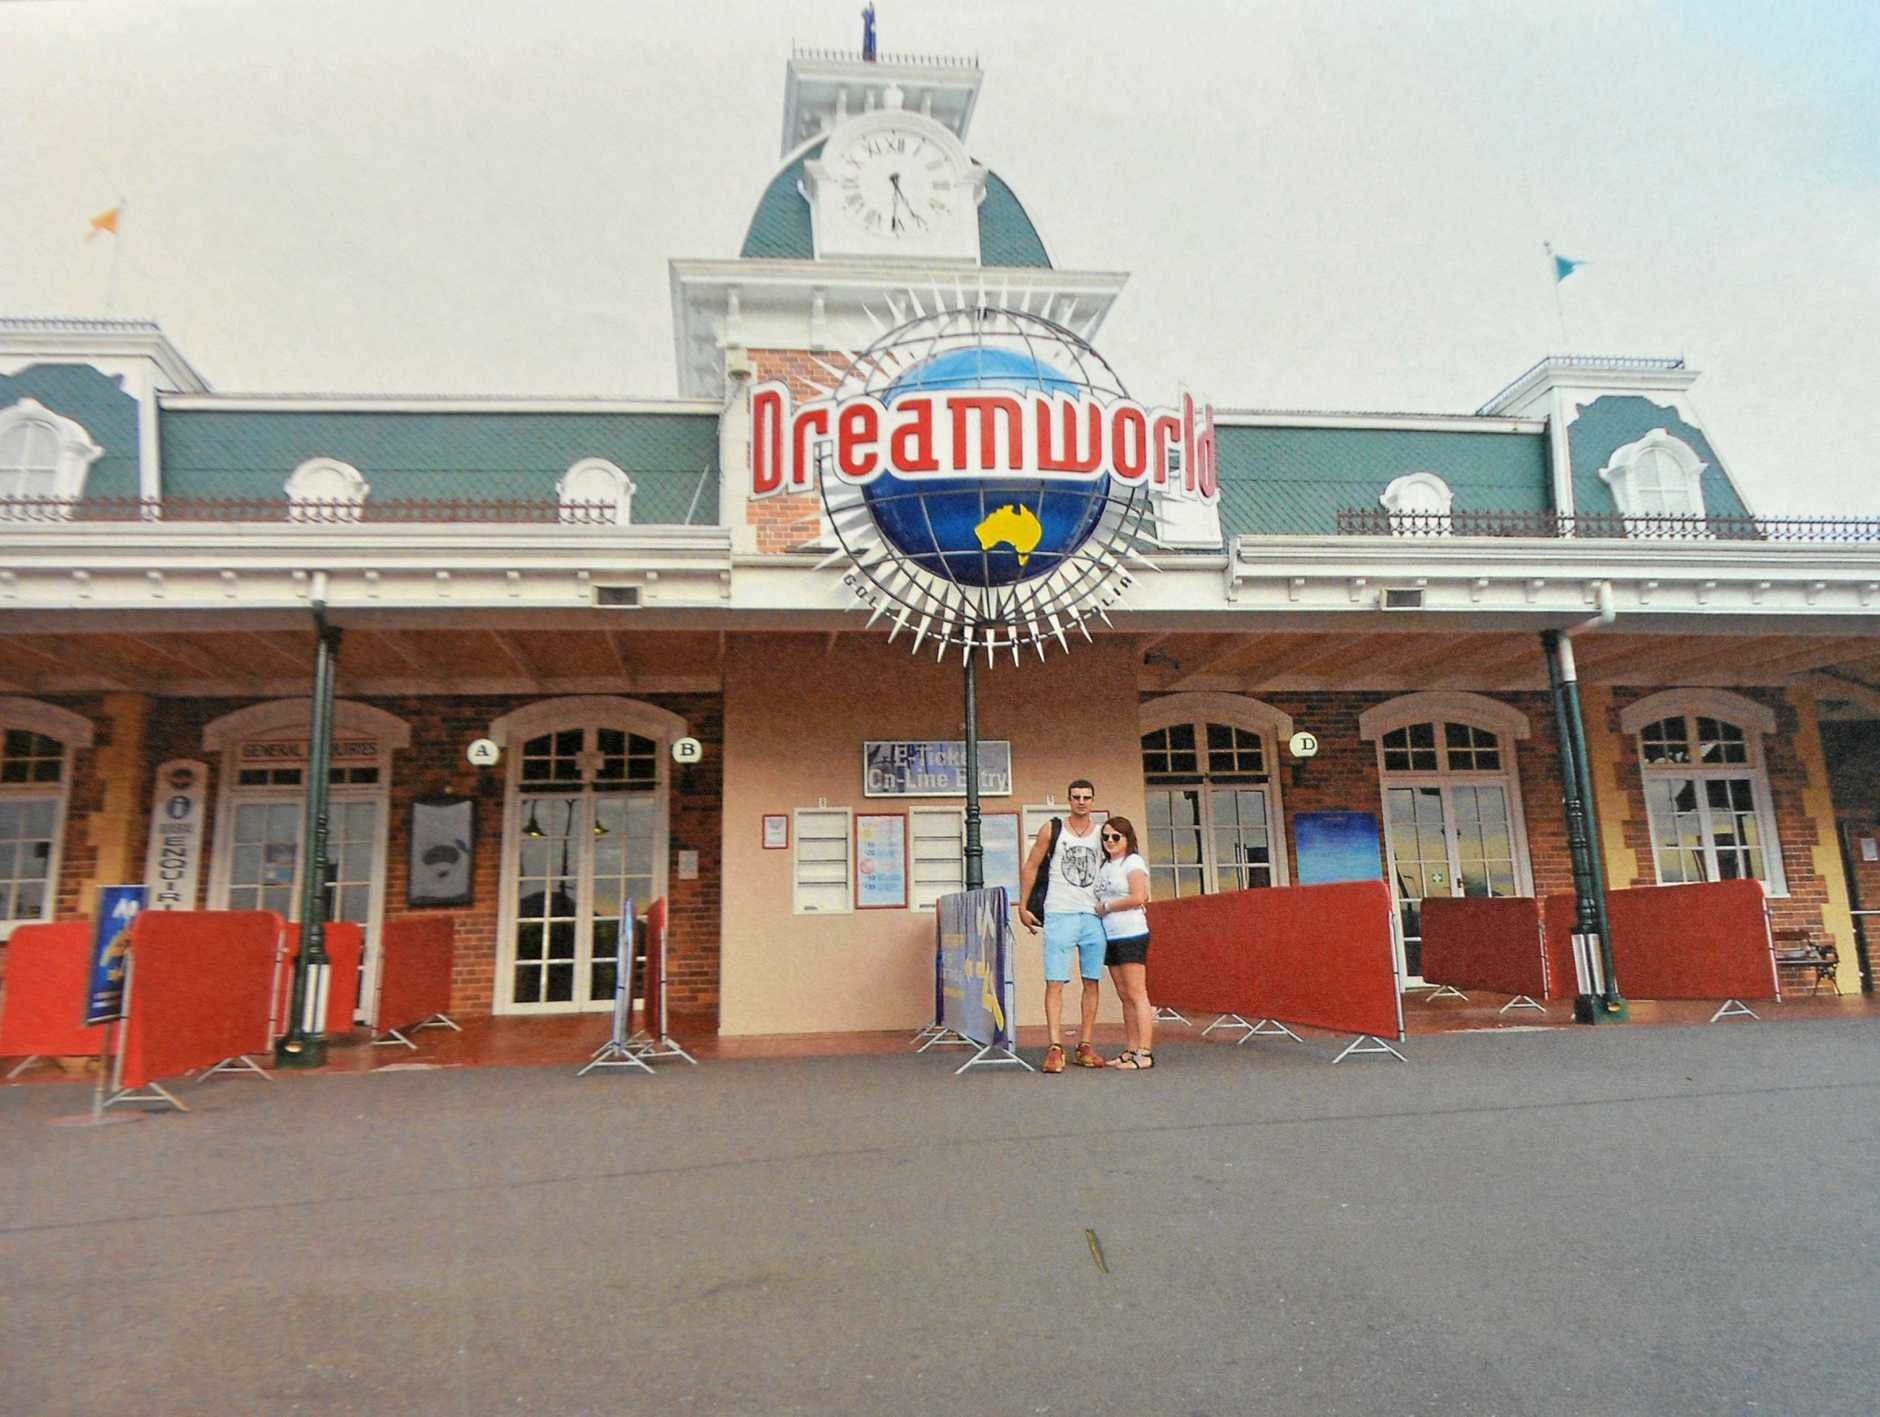 Shandee Blackburn and John Peros at Dreamworld. Date unknown. This photo was tendered as part of a coronial inquest into the 23 year old's death.